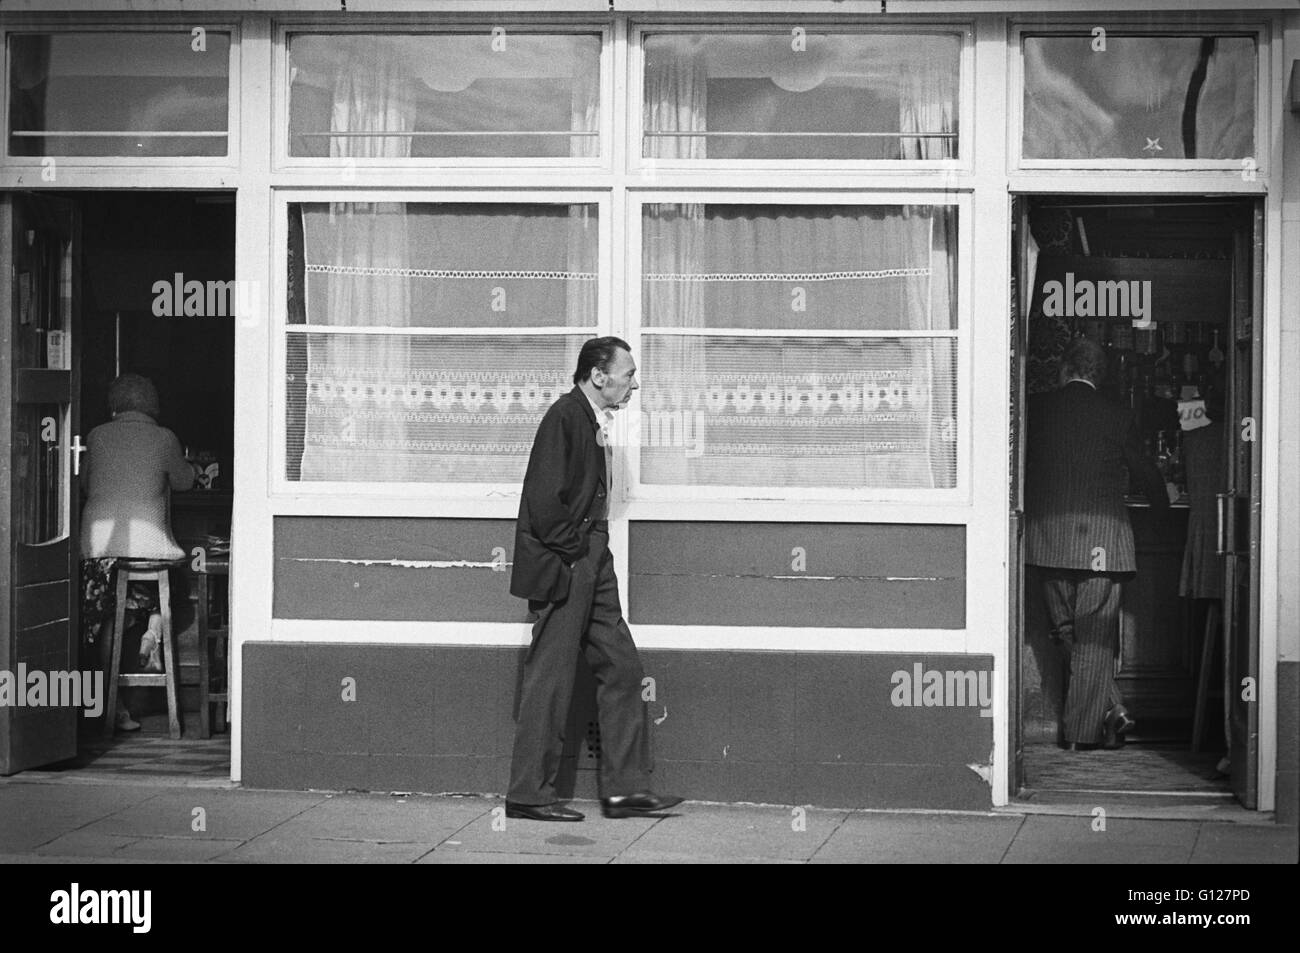 Archive image of a man walking between two entrances of a pub, Lambeth, London, England, 1979, alternative version Stock Photo